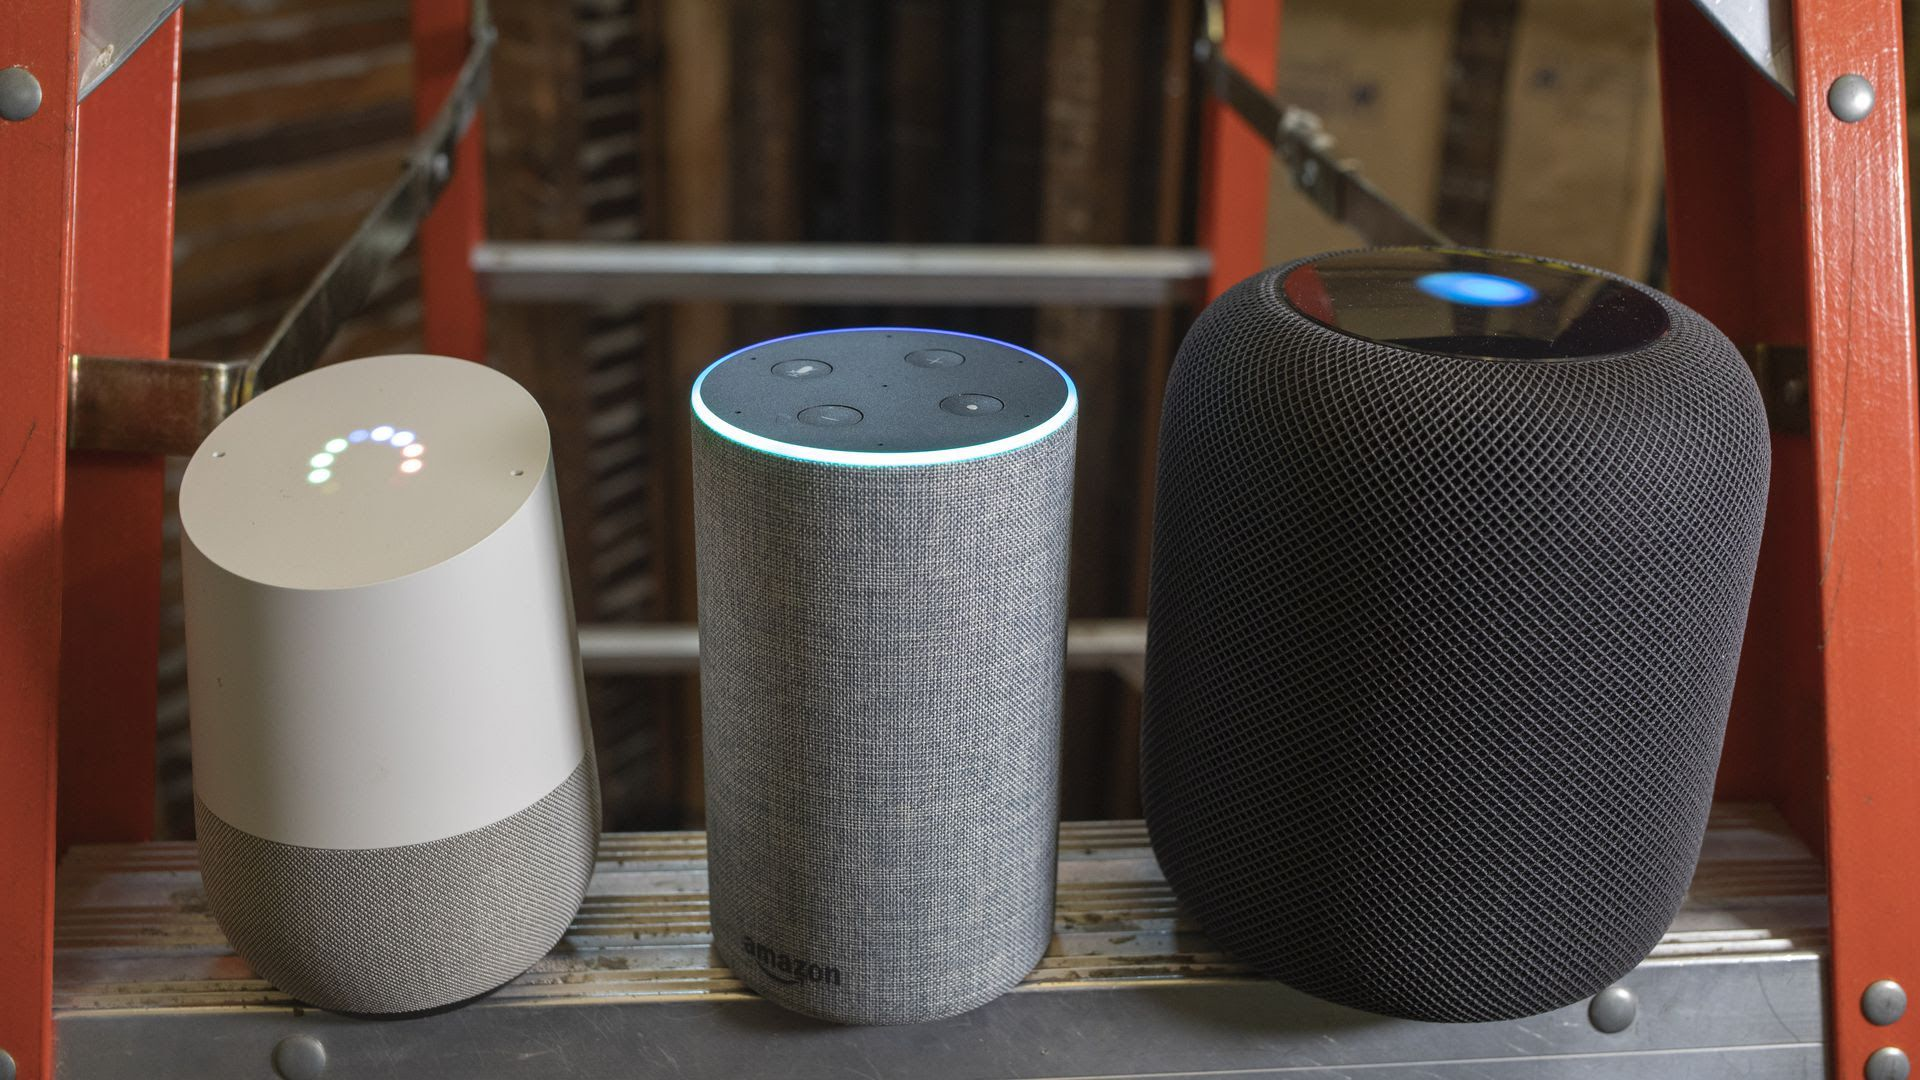 3 smart speakers from tech giants Google, Amazon and Apple